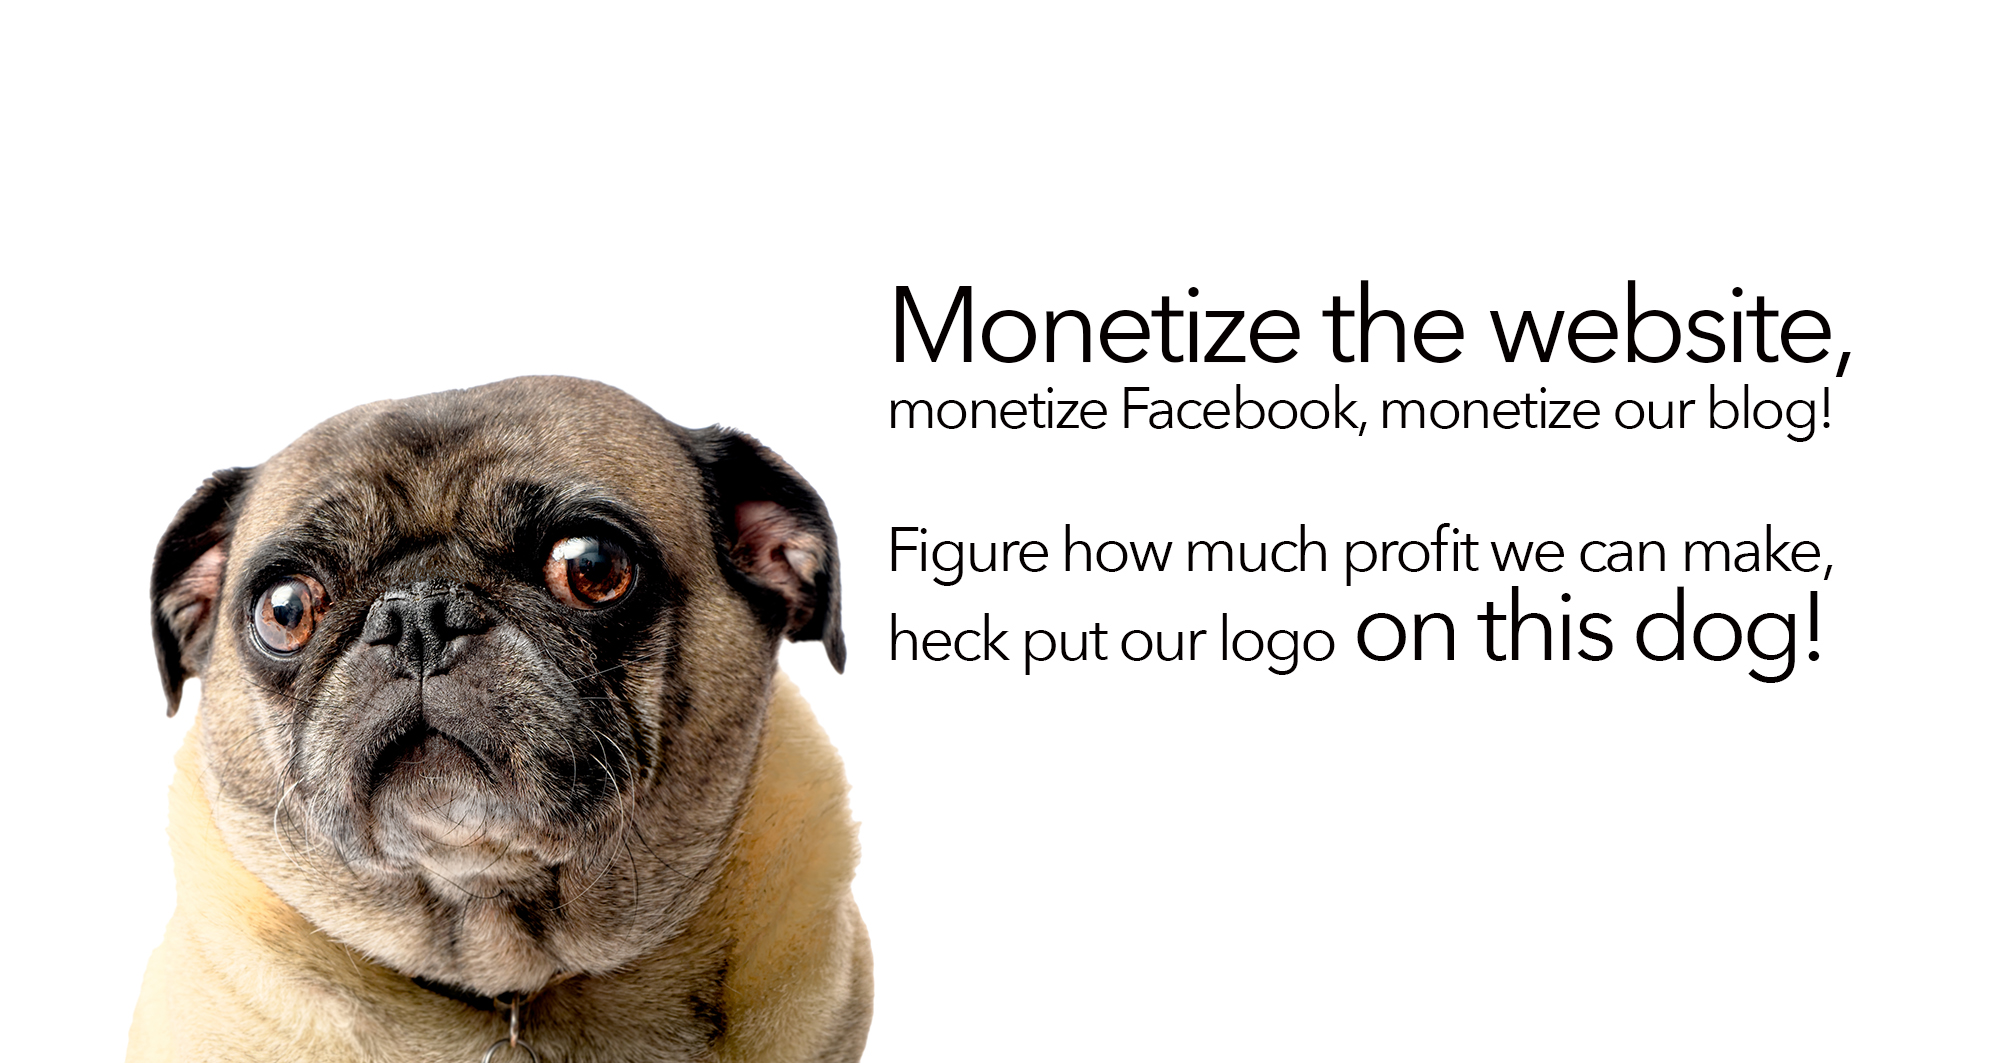 Monetize the website monetize the Facebook monetize our blog! Figure how much profit we can make